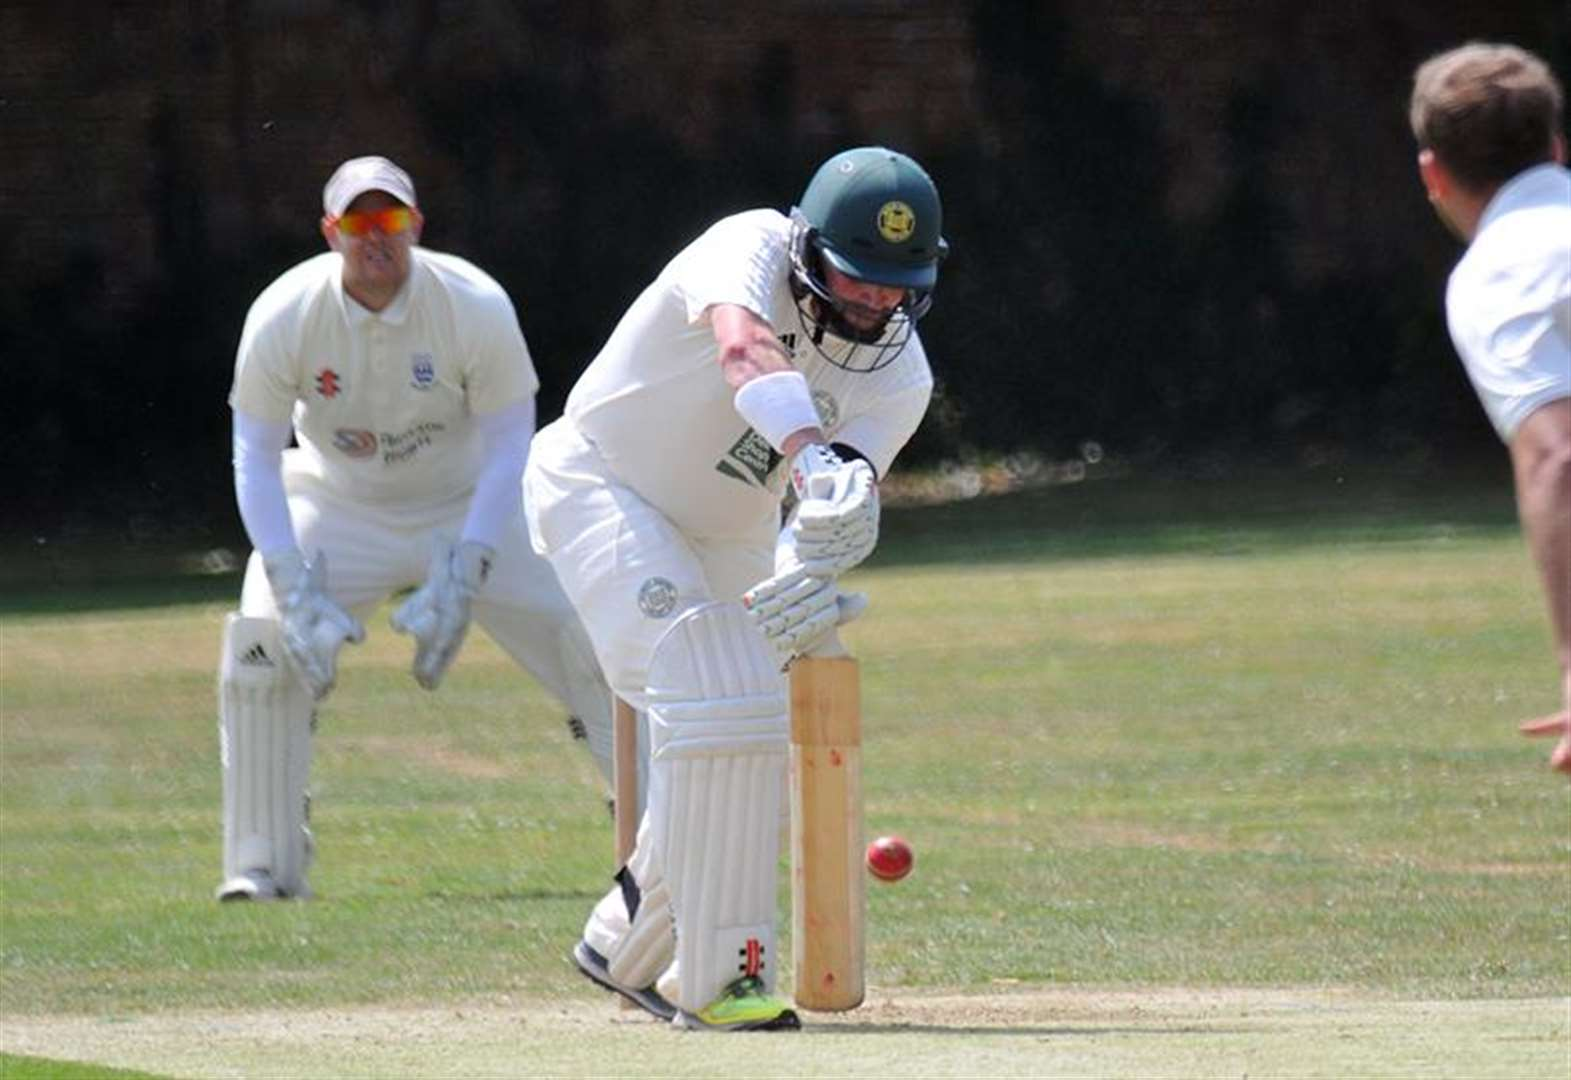 LINCS PREMIER DIVISION: Bandaranaike bags eight wickets to inspire Bourne to victory